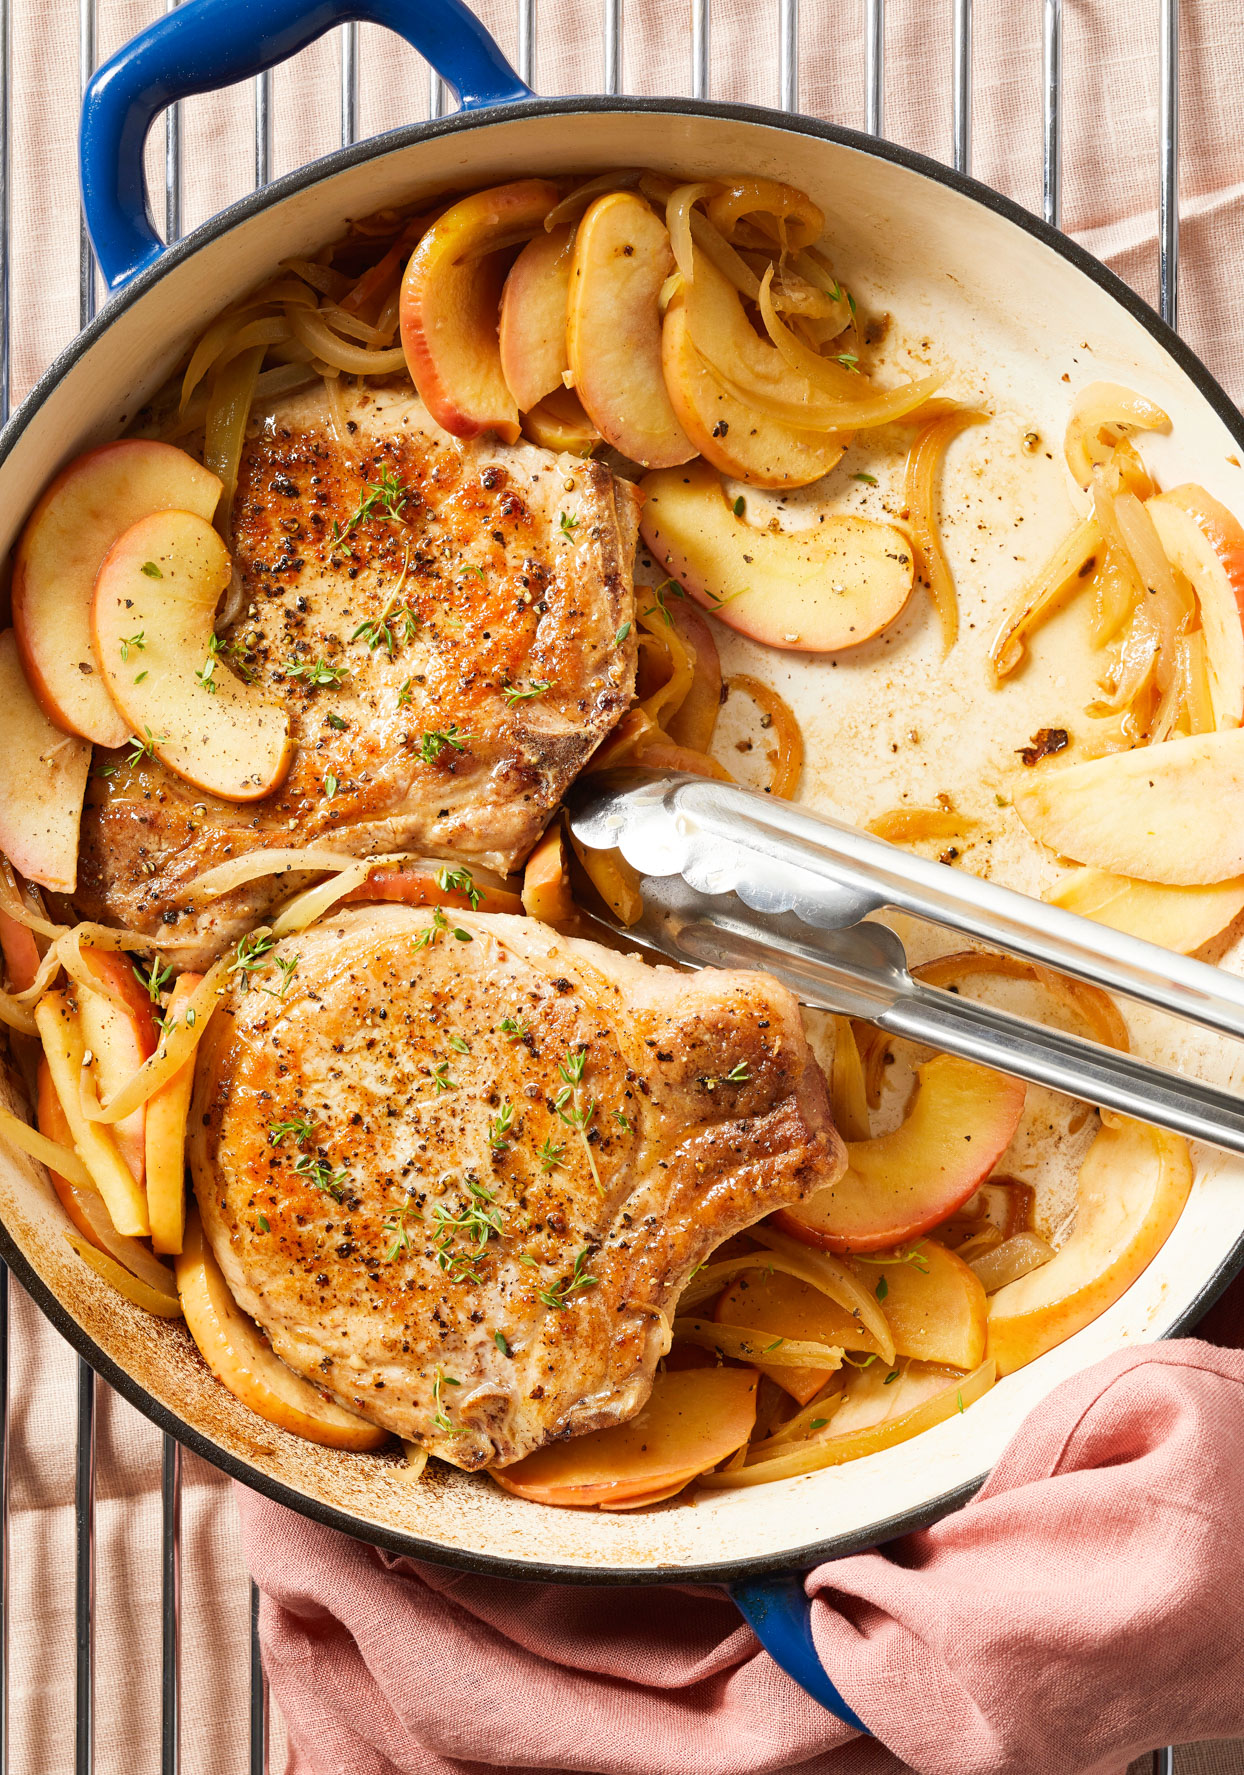 Tongs in blue skillet of Seared Pork Chops with Apples and Onion